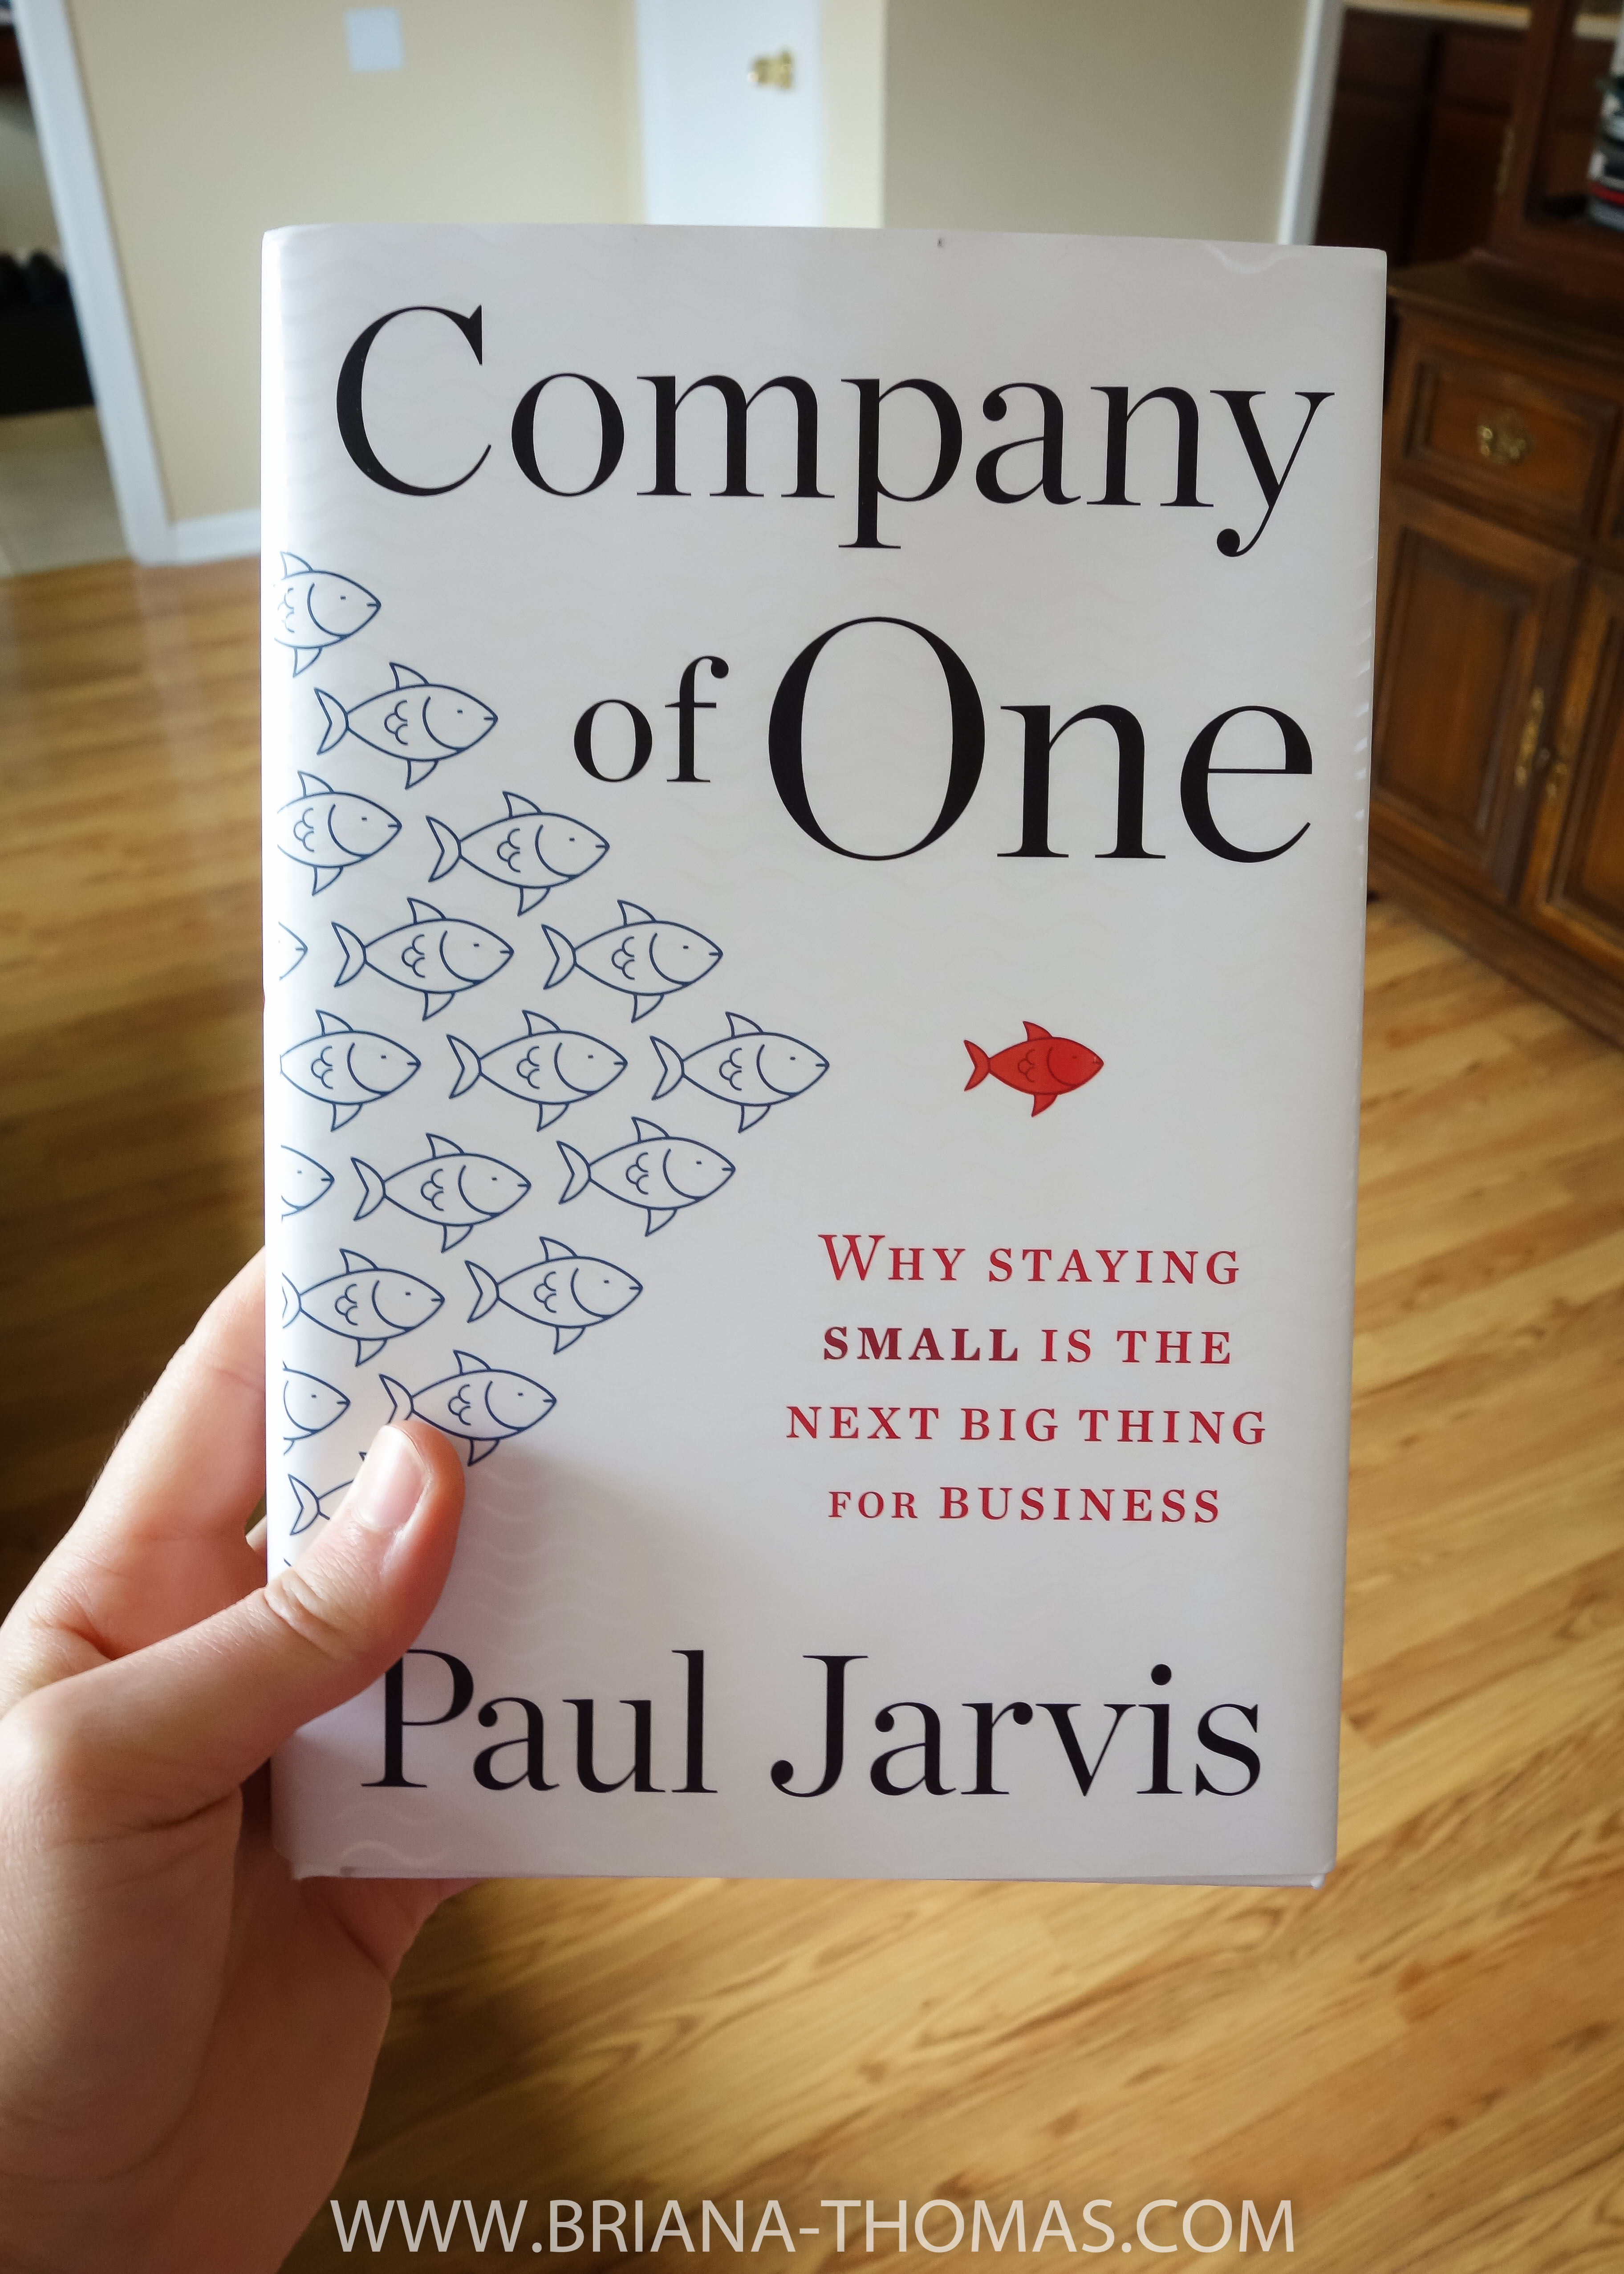 Company of One book, by Paul Jarvis